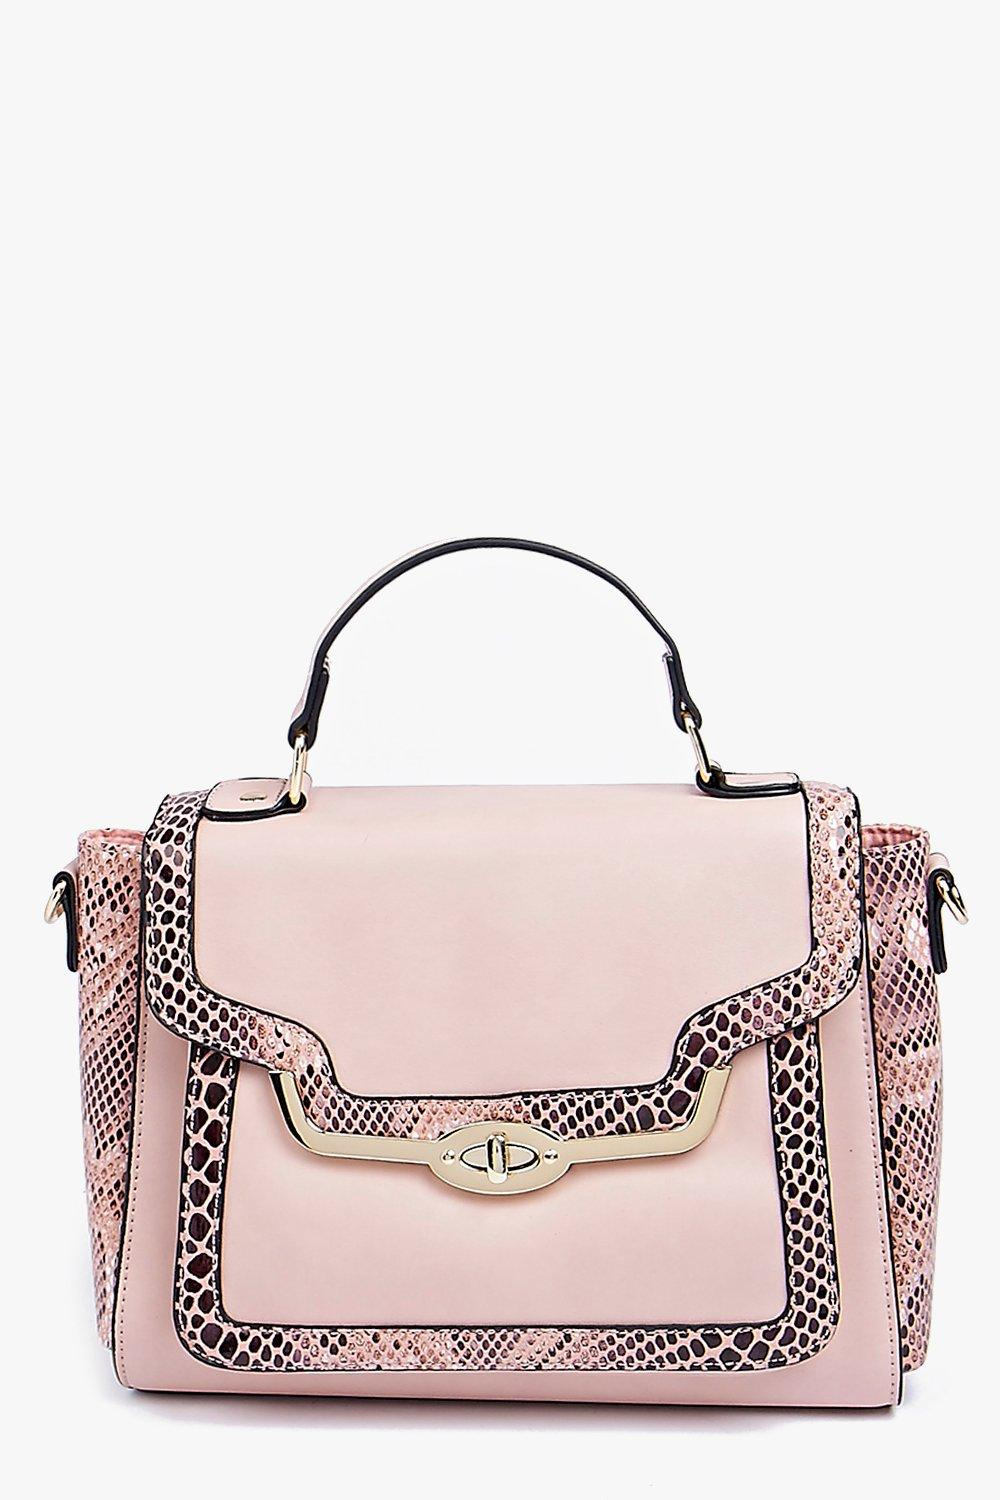 Faux Snake Metal Lock Structured Day Bag blush